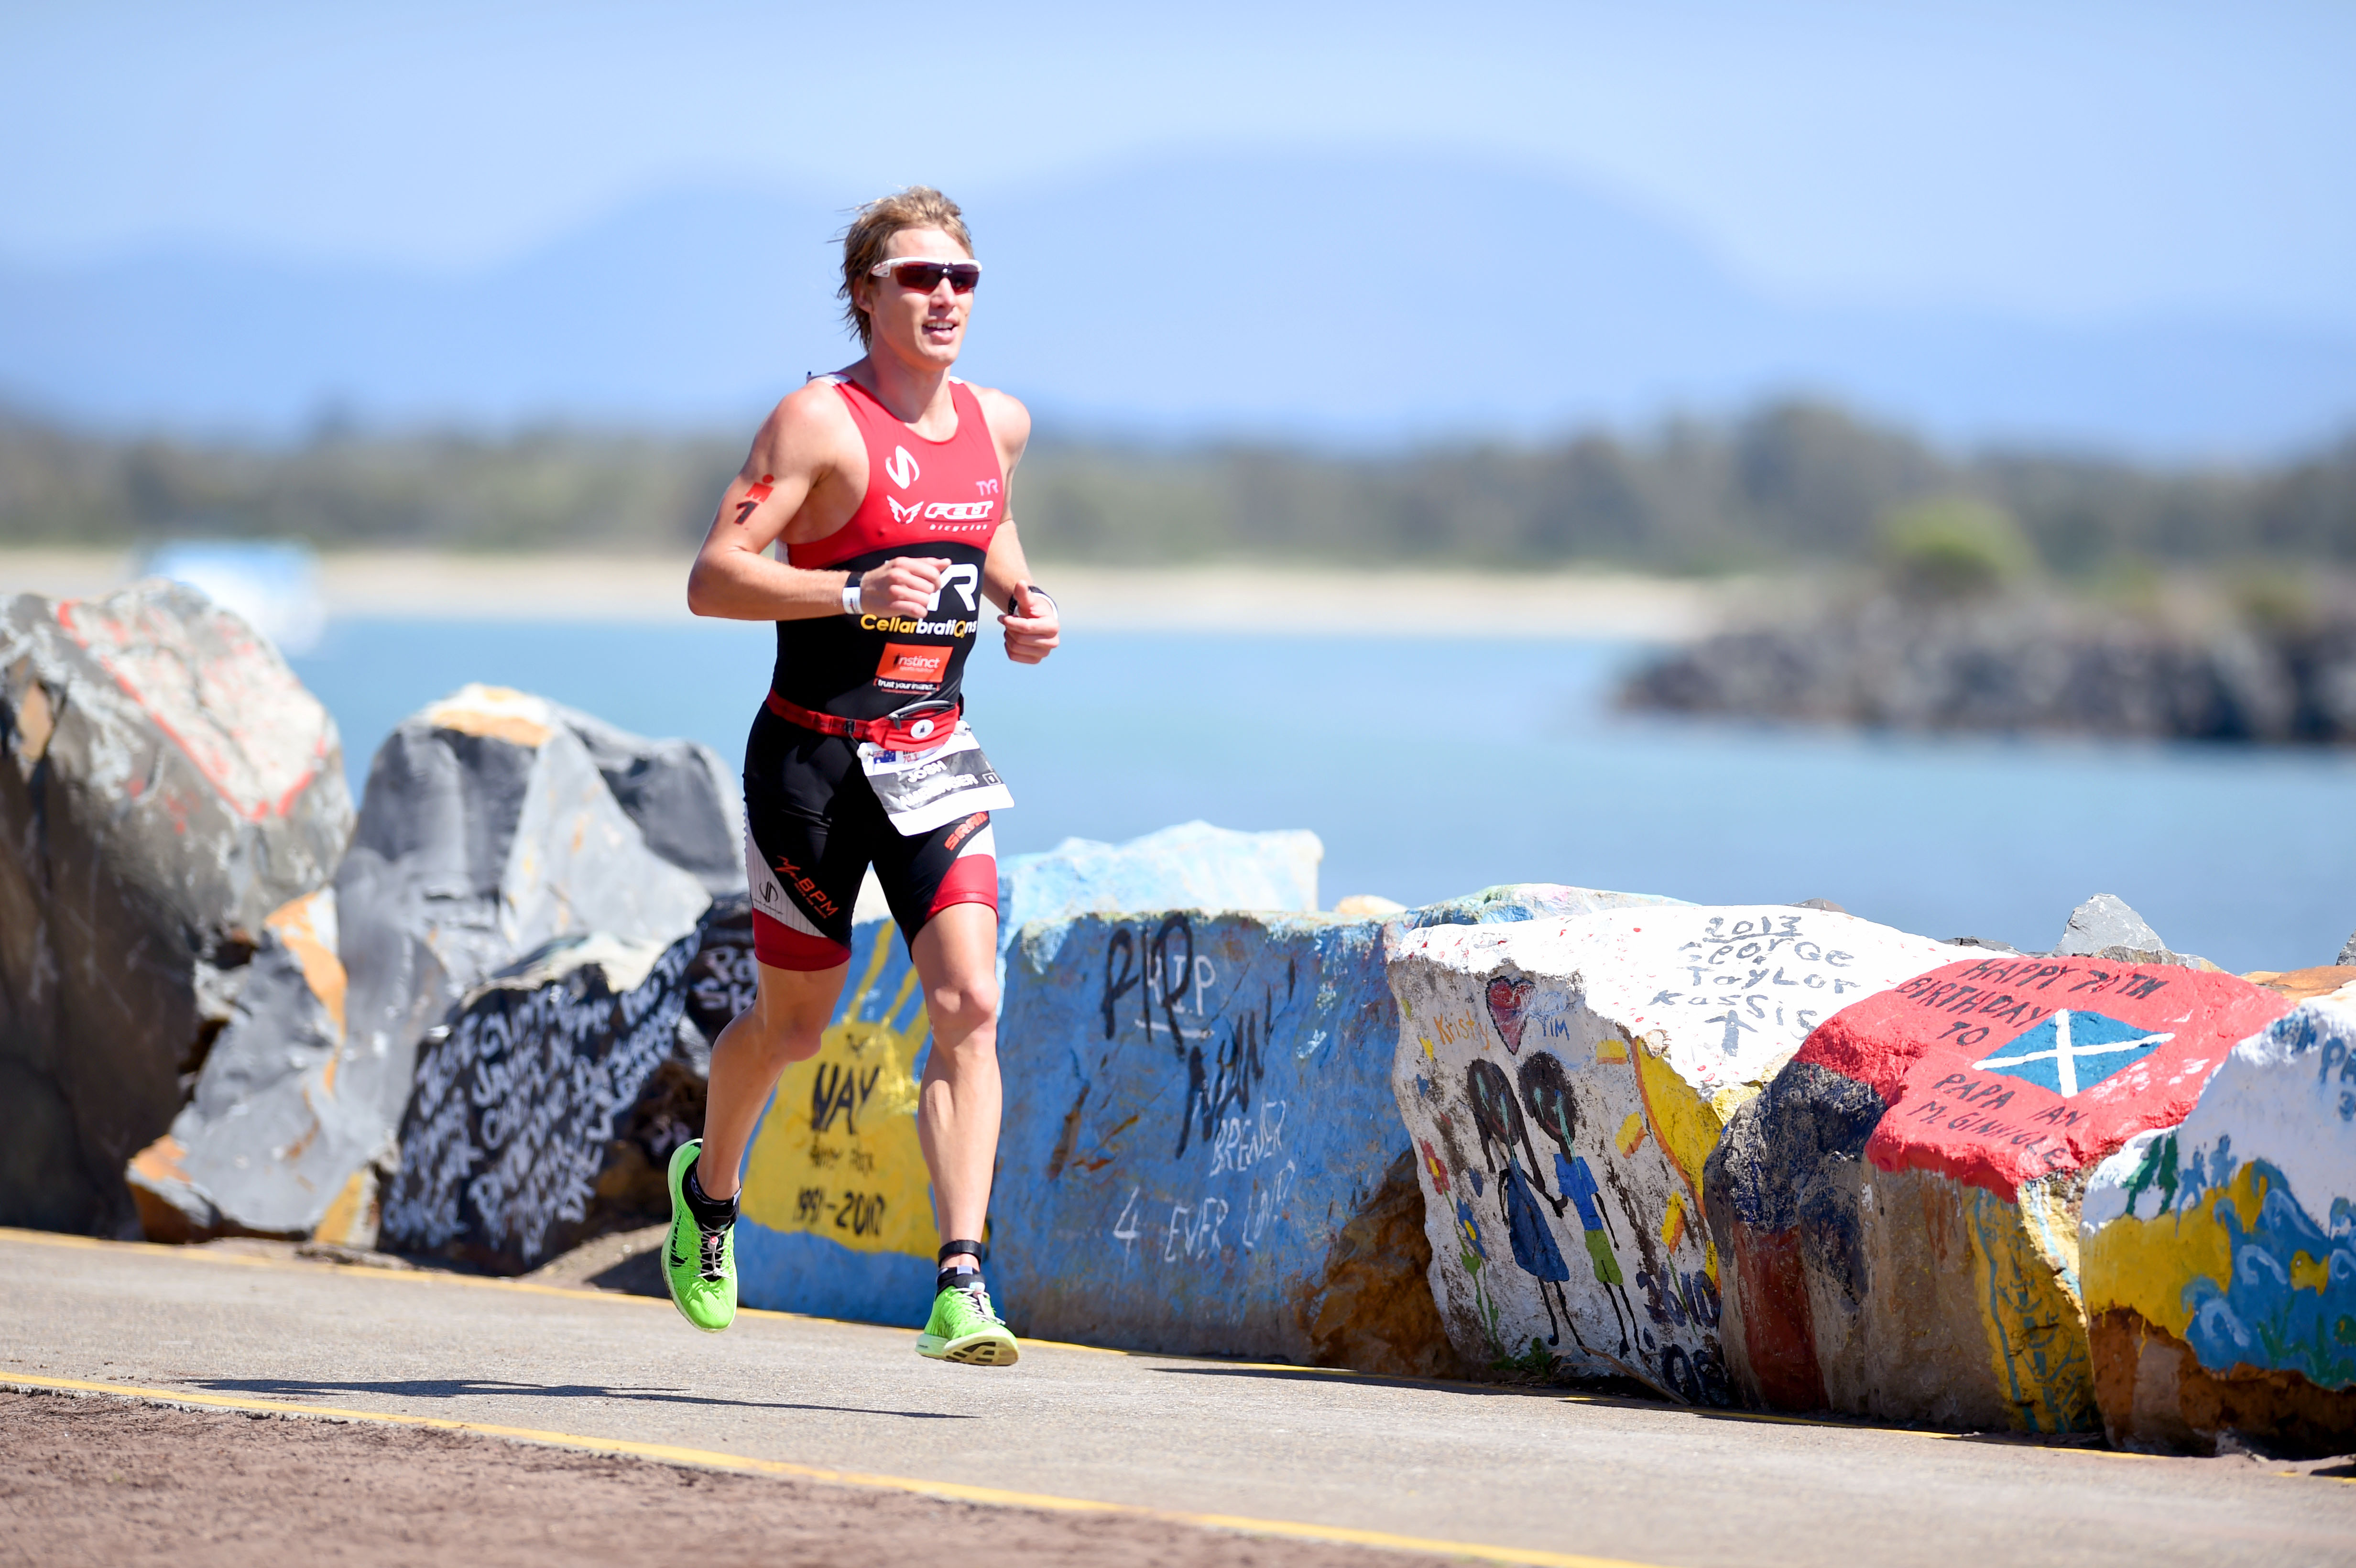 Amberger runs to his second victory here in Port Macquarie